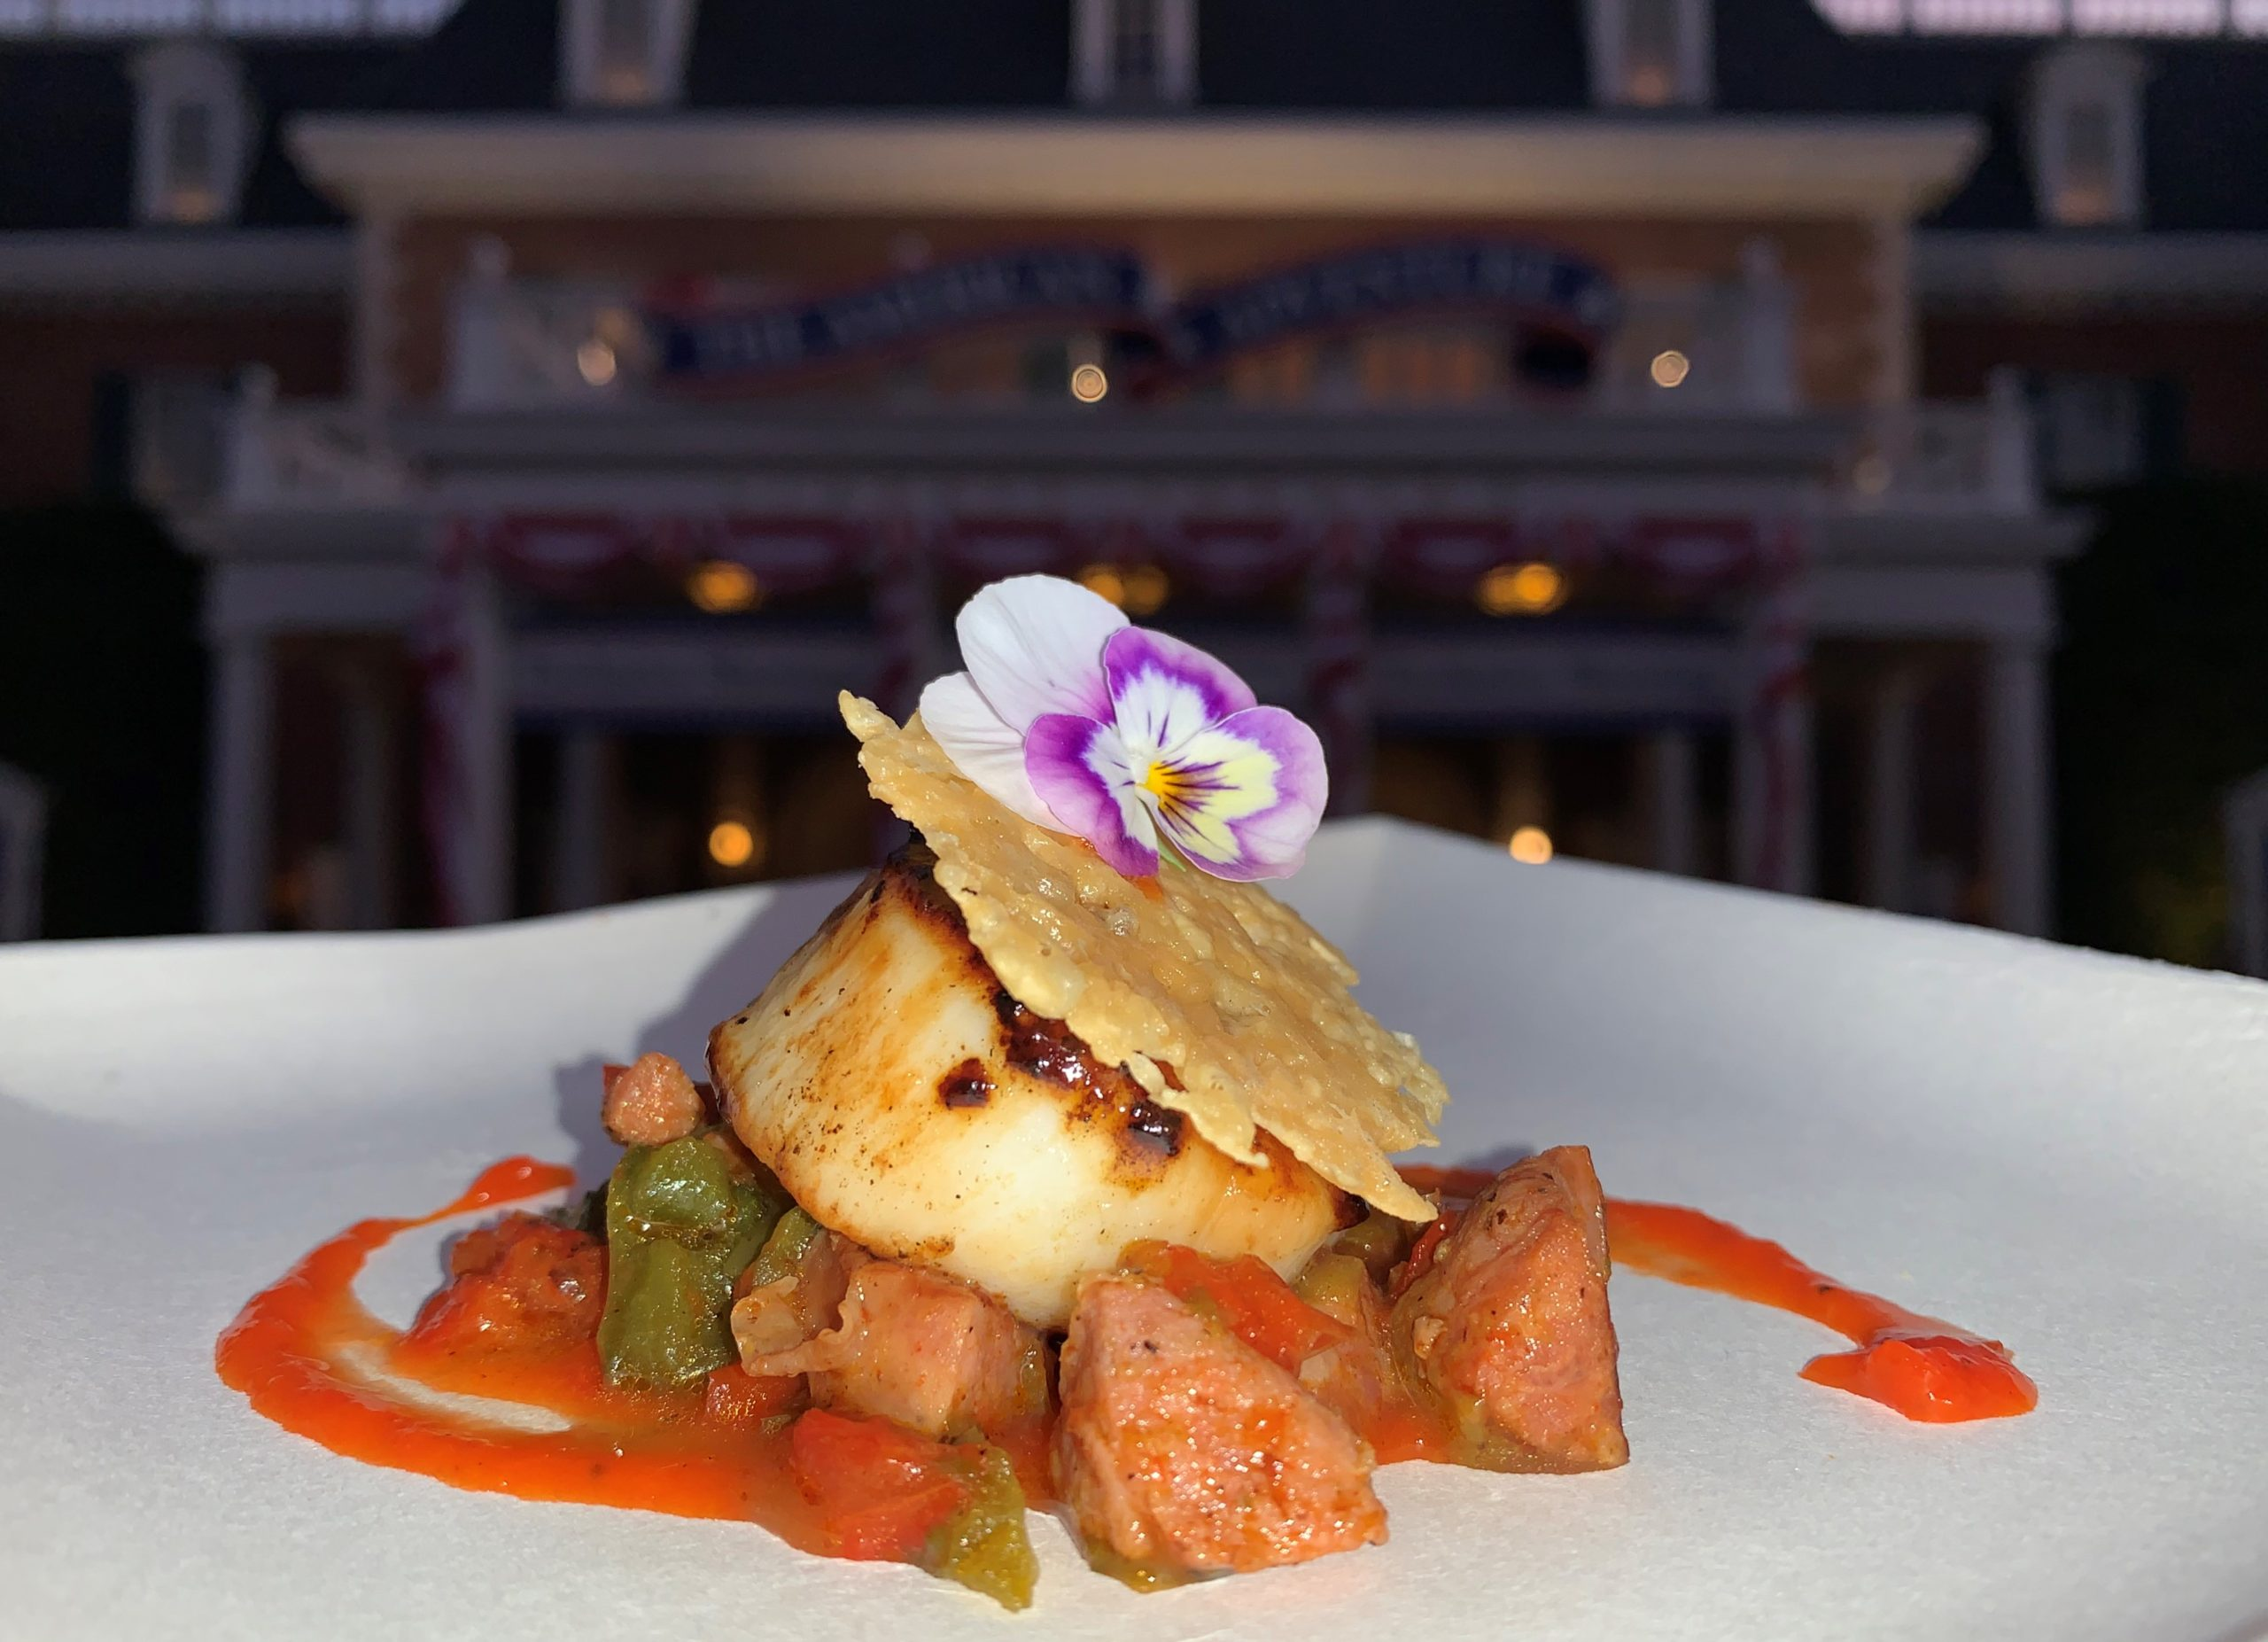 Pan-Seared Scallop with Chorizo, Roasted Red Pepper Coulis and a Parmesan Crisp from The Artist's Table in America